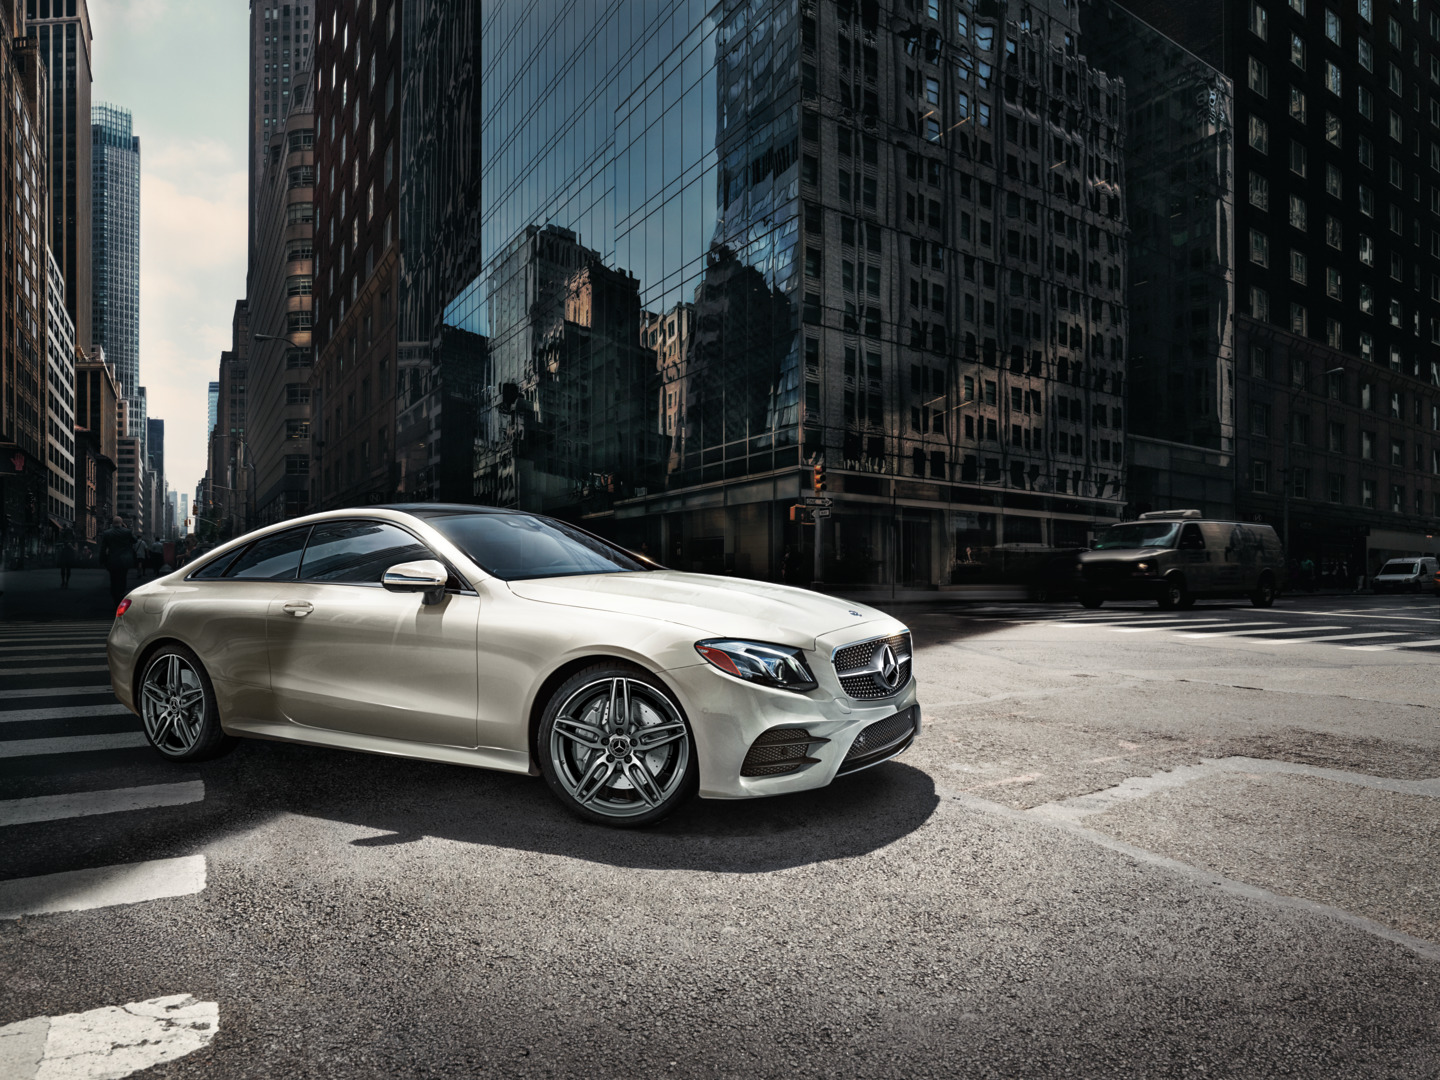 Mercedes-Benz E-Classs available in Clearwater, FL at Lokey Motor Company